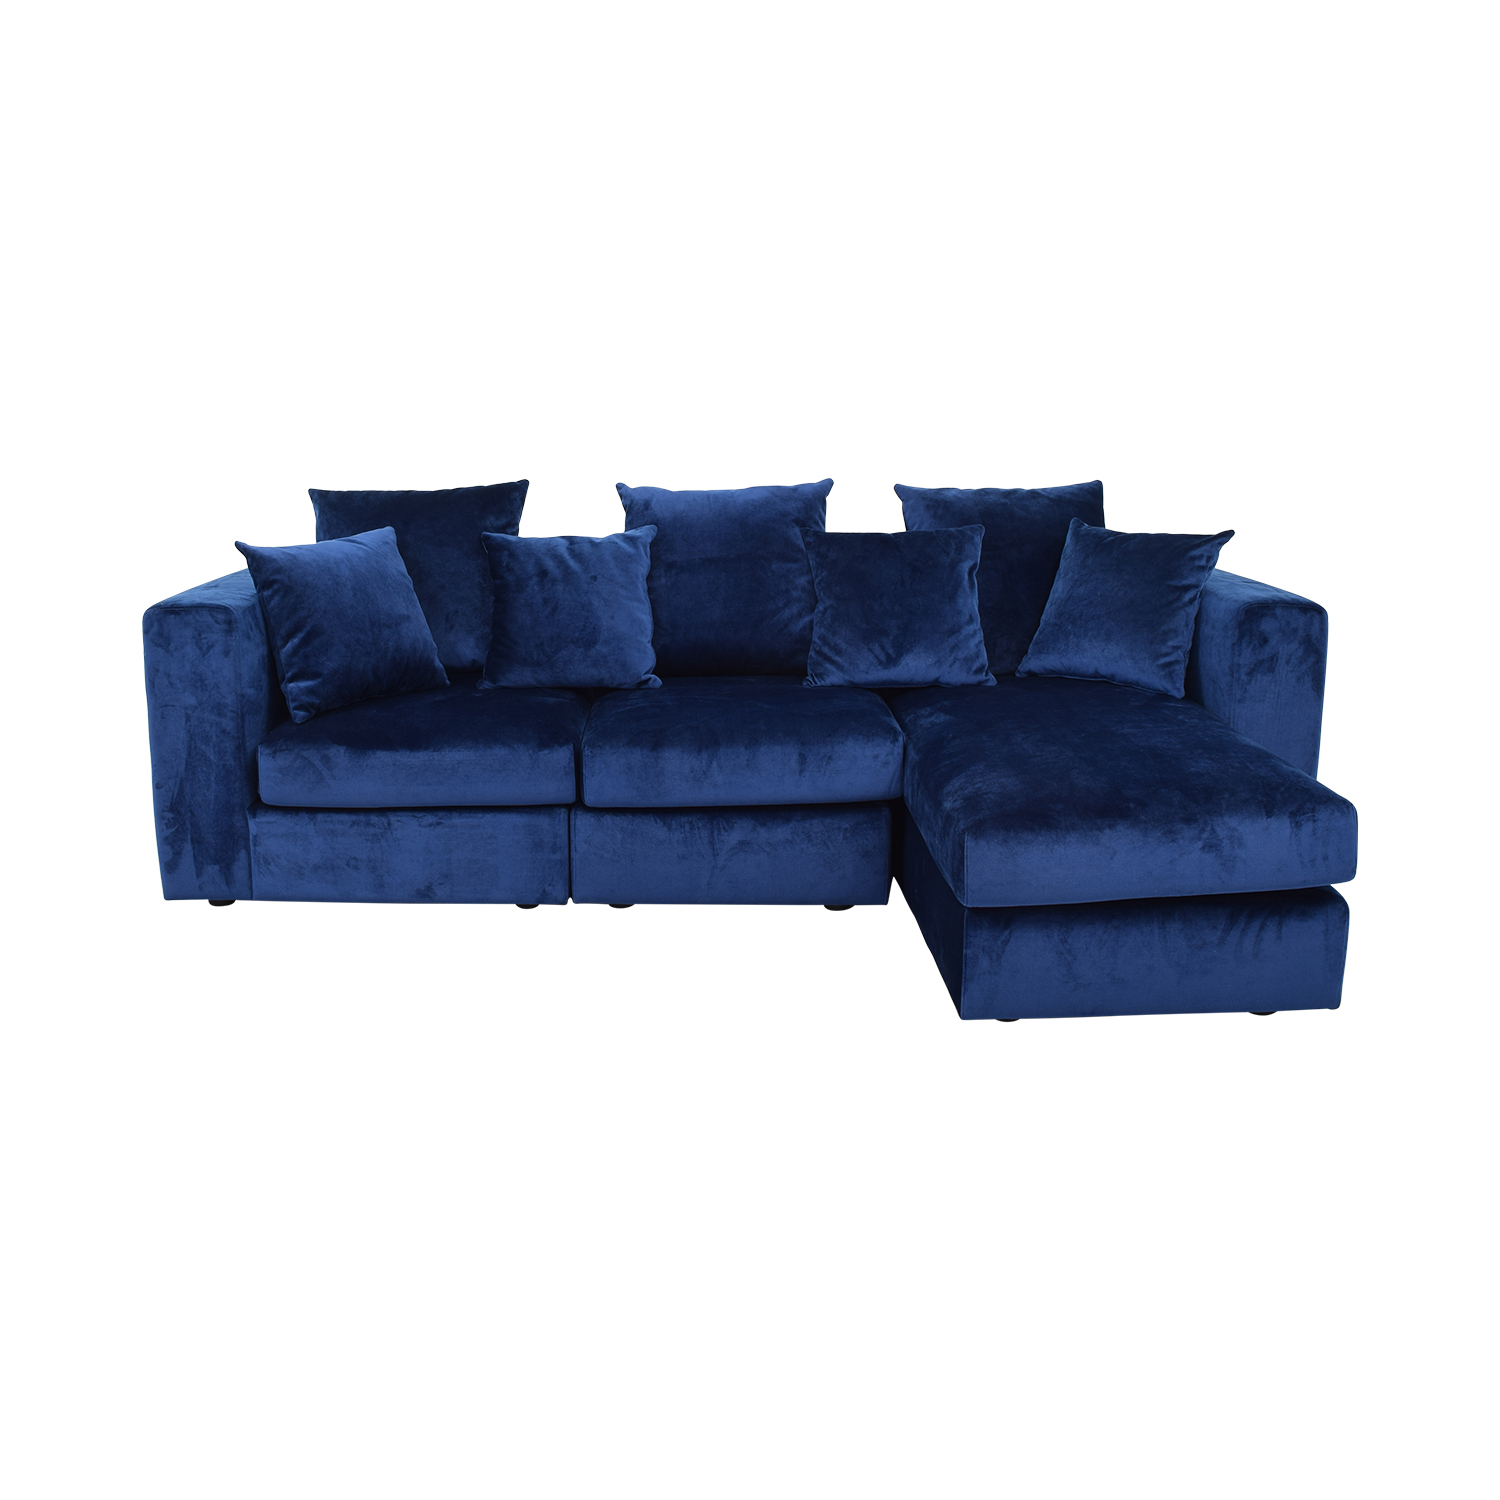 buy Toby Right Chaise Sectional Interior Define